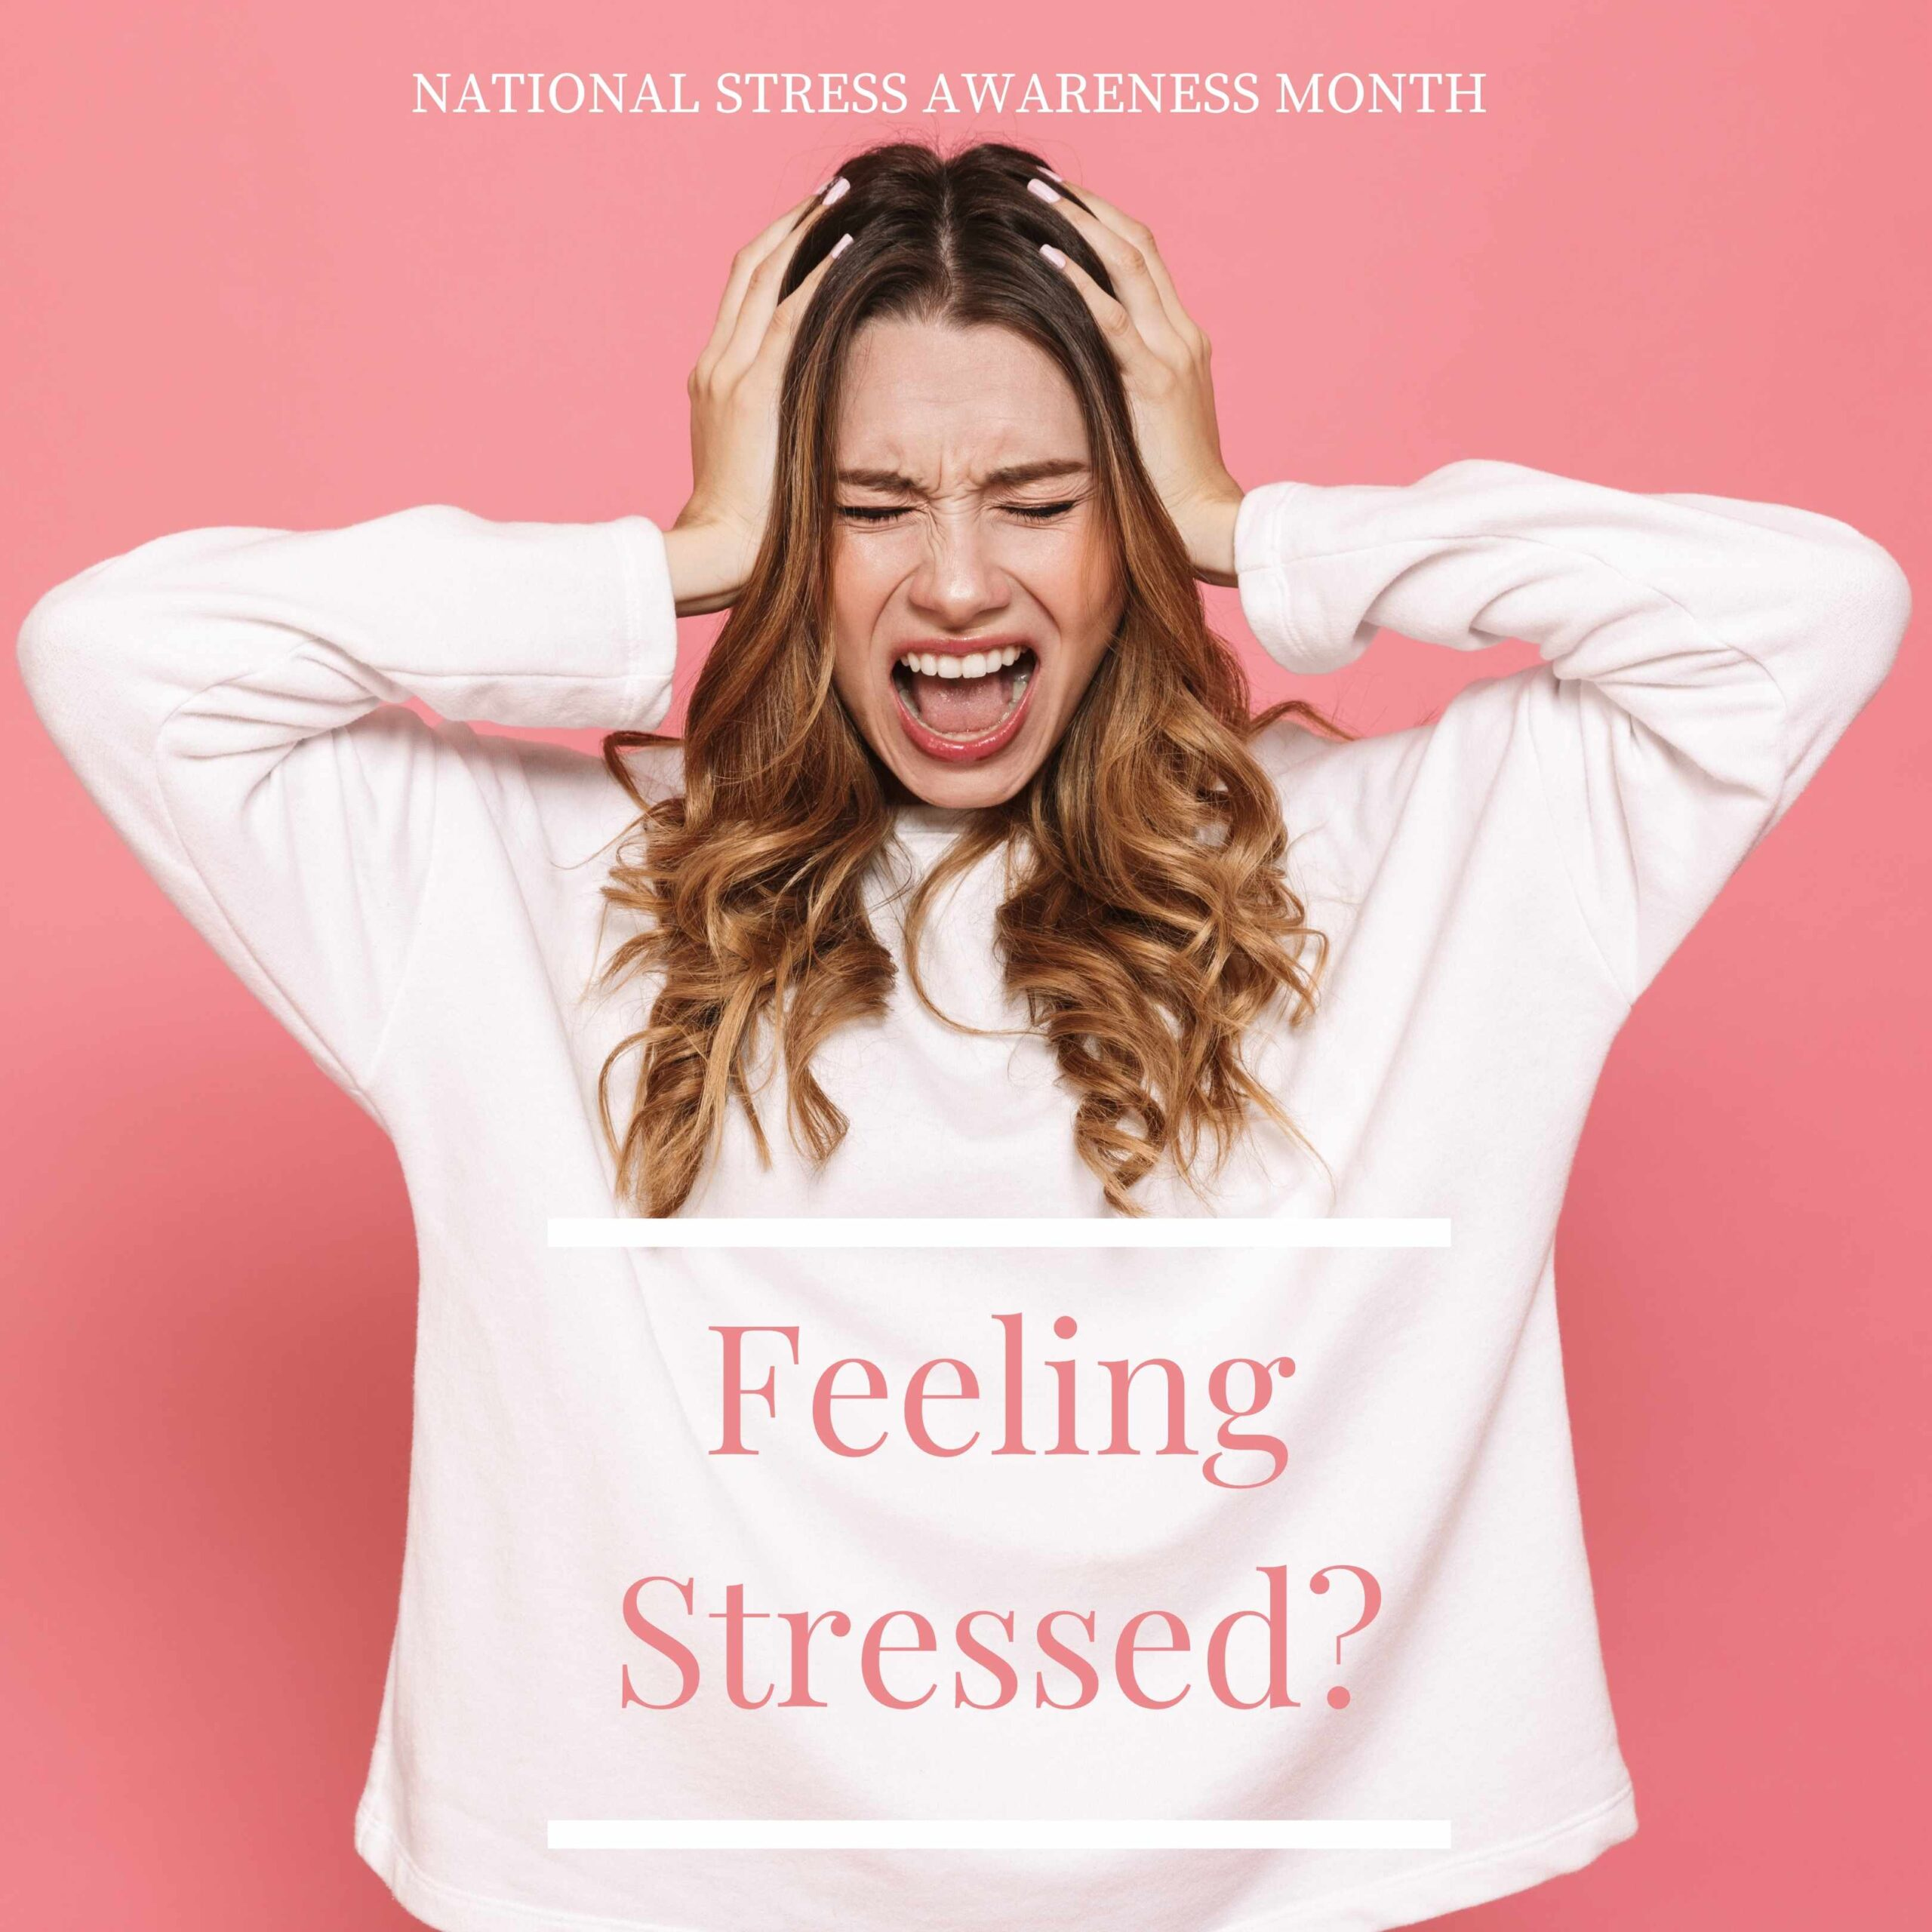 National Stress Awareness Month